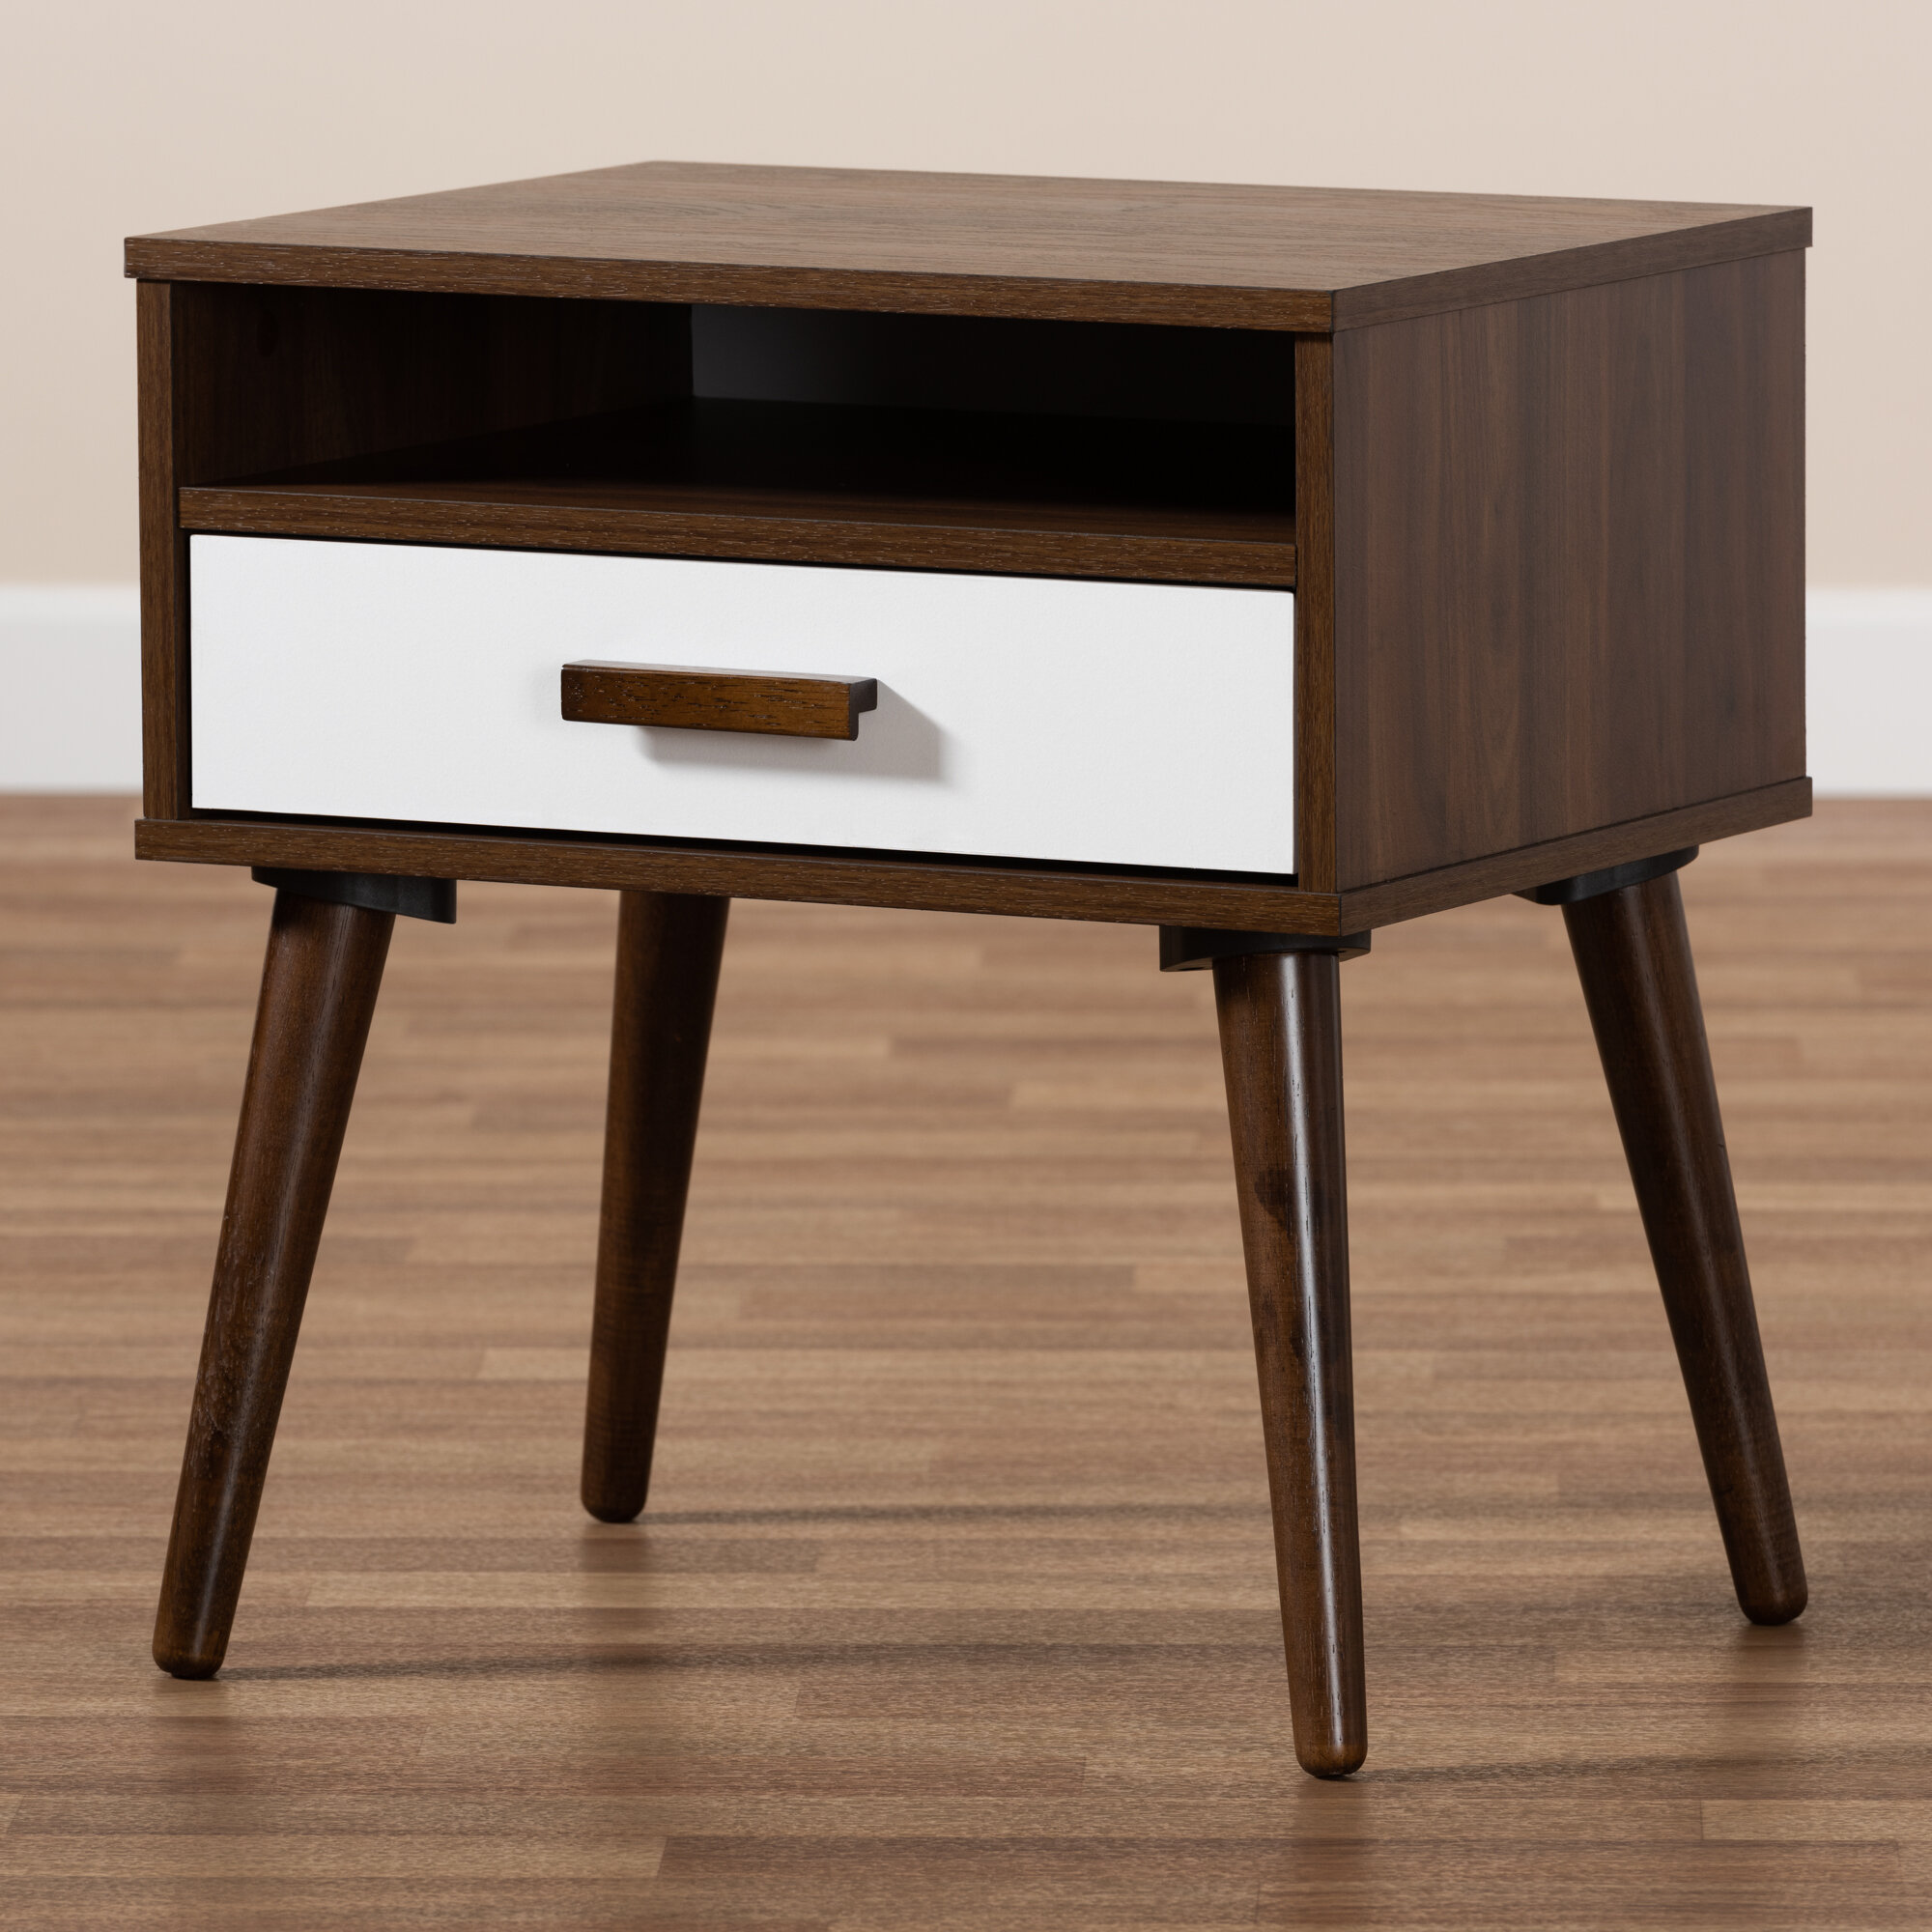 Image of: Union Rustic Revis Mid Century Modern Two Tone White And Walnut Finished 1 Drawer Wood End Table Wayfair